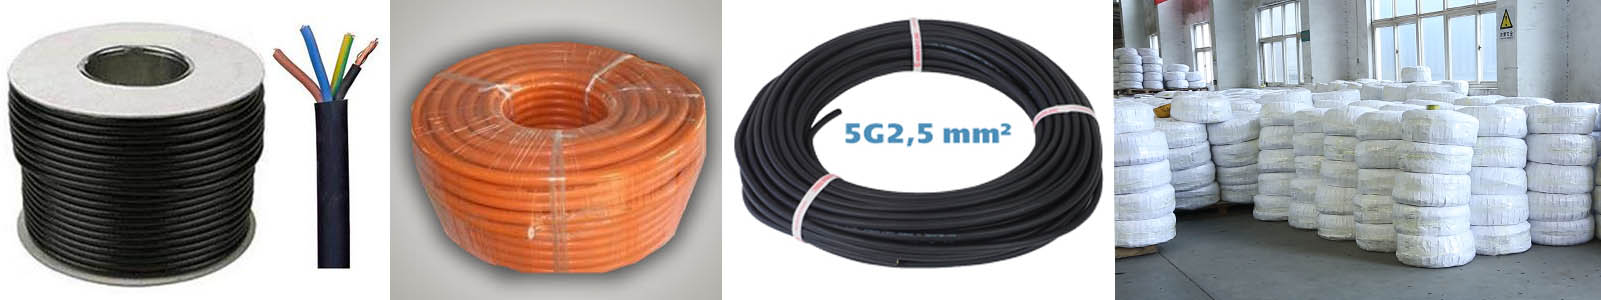 rubber cable package